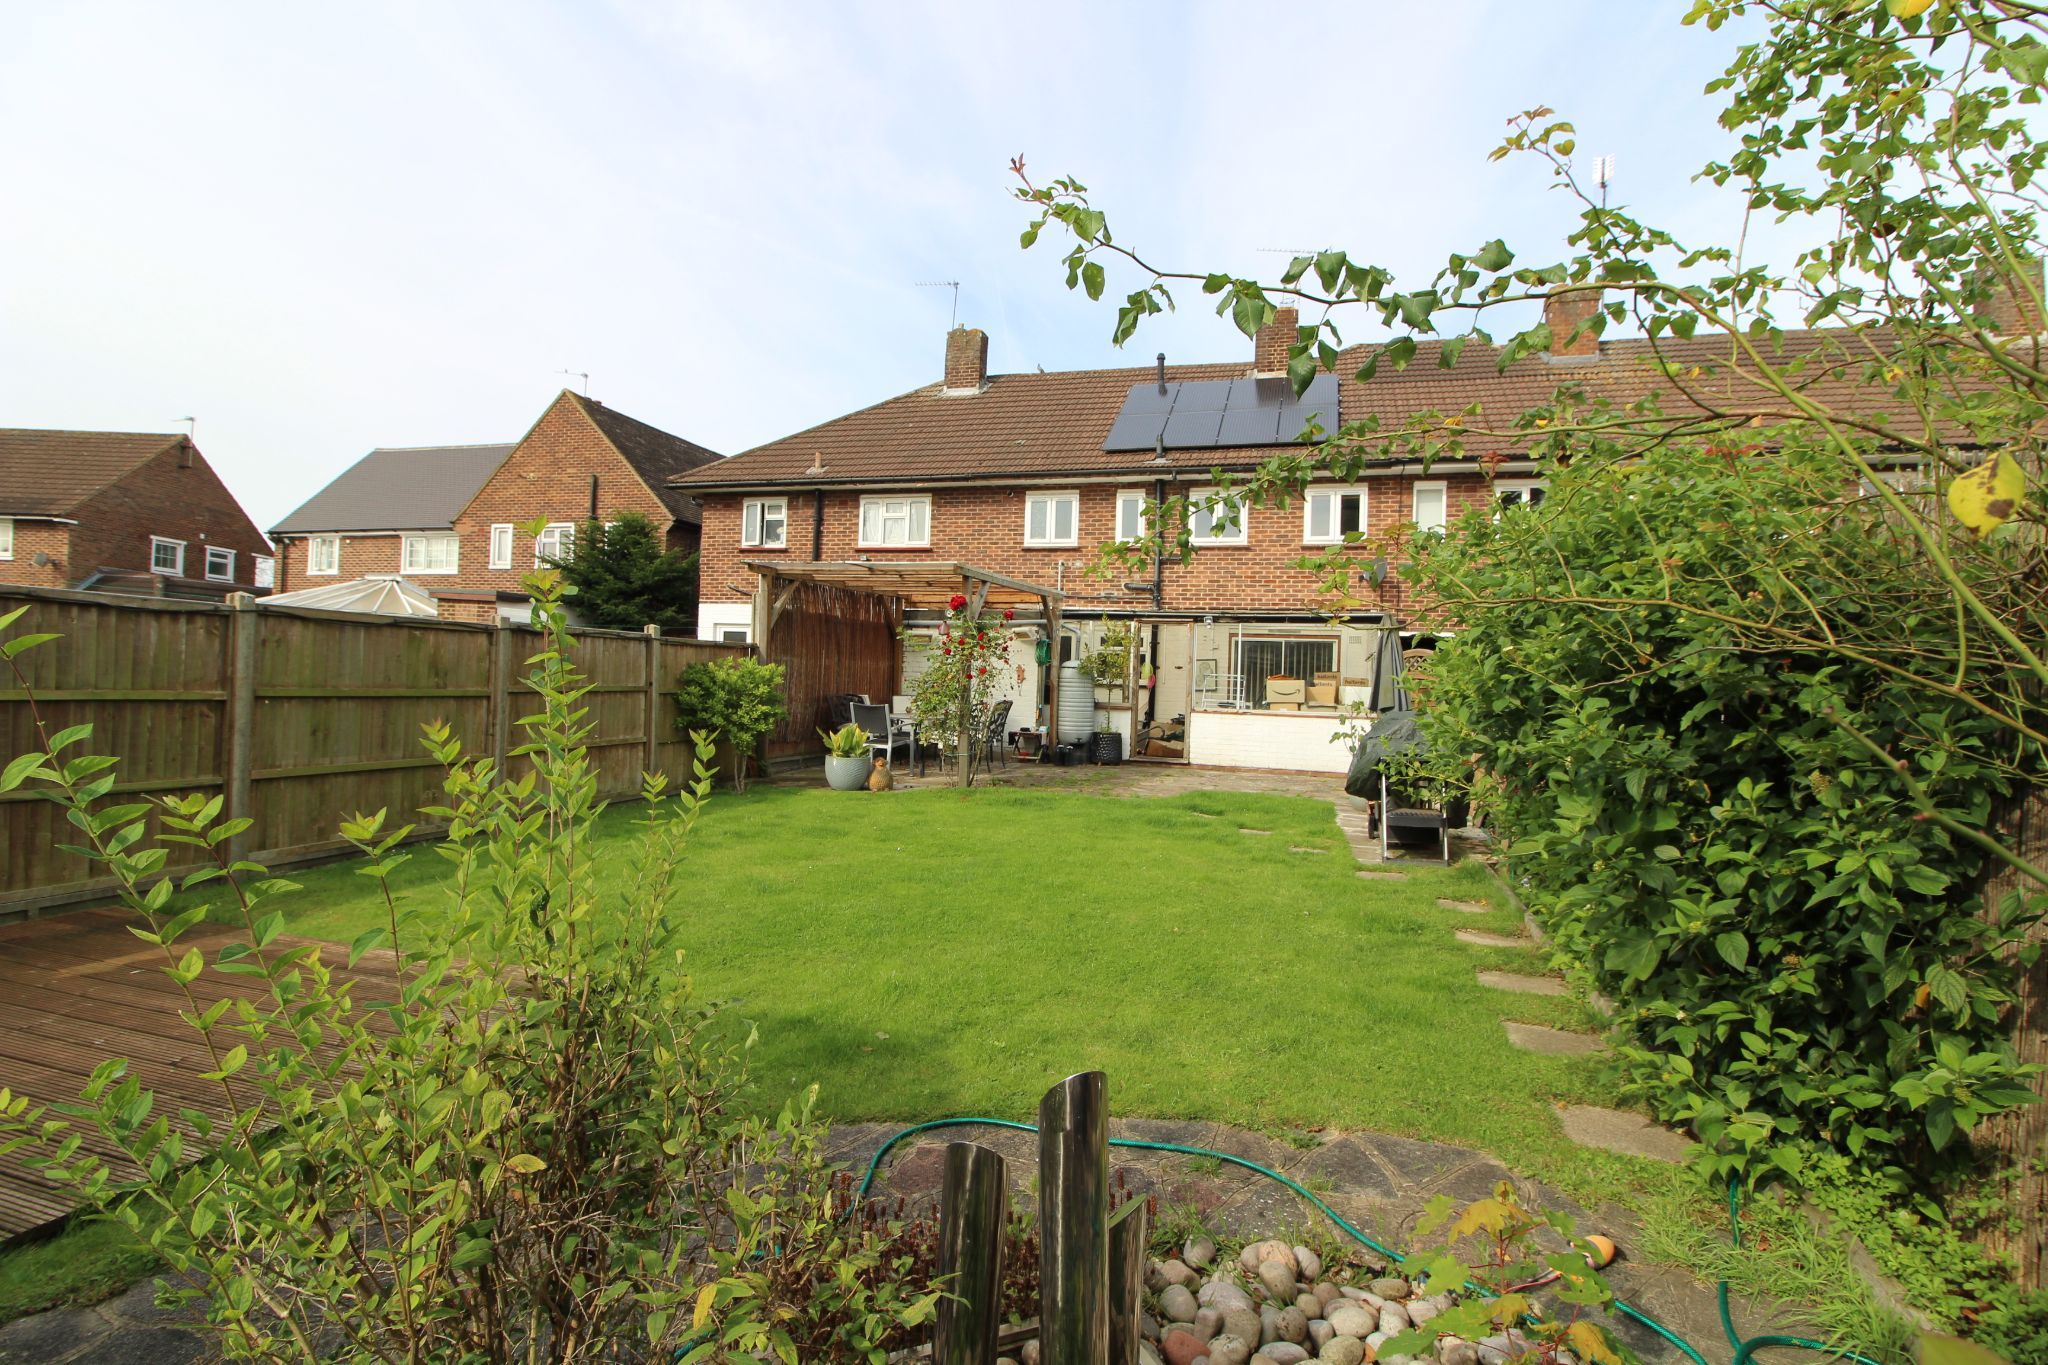 4 bedroom mid terraced house For Sale in Potters Bar - Property photograph